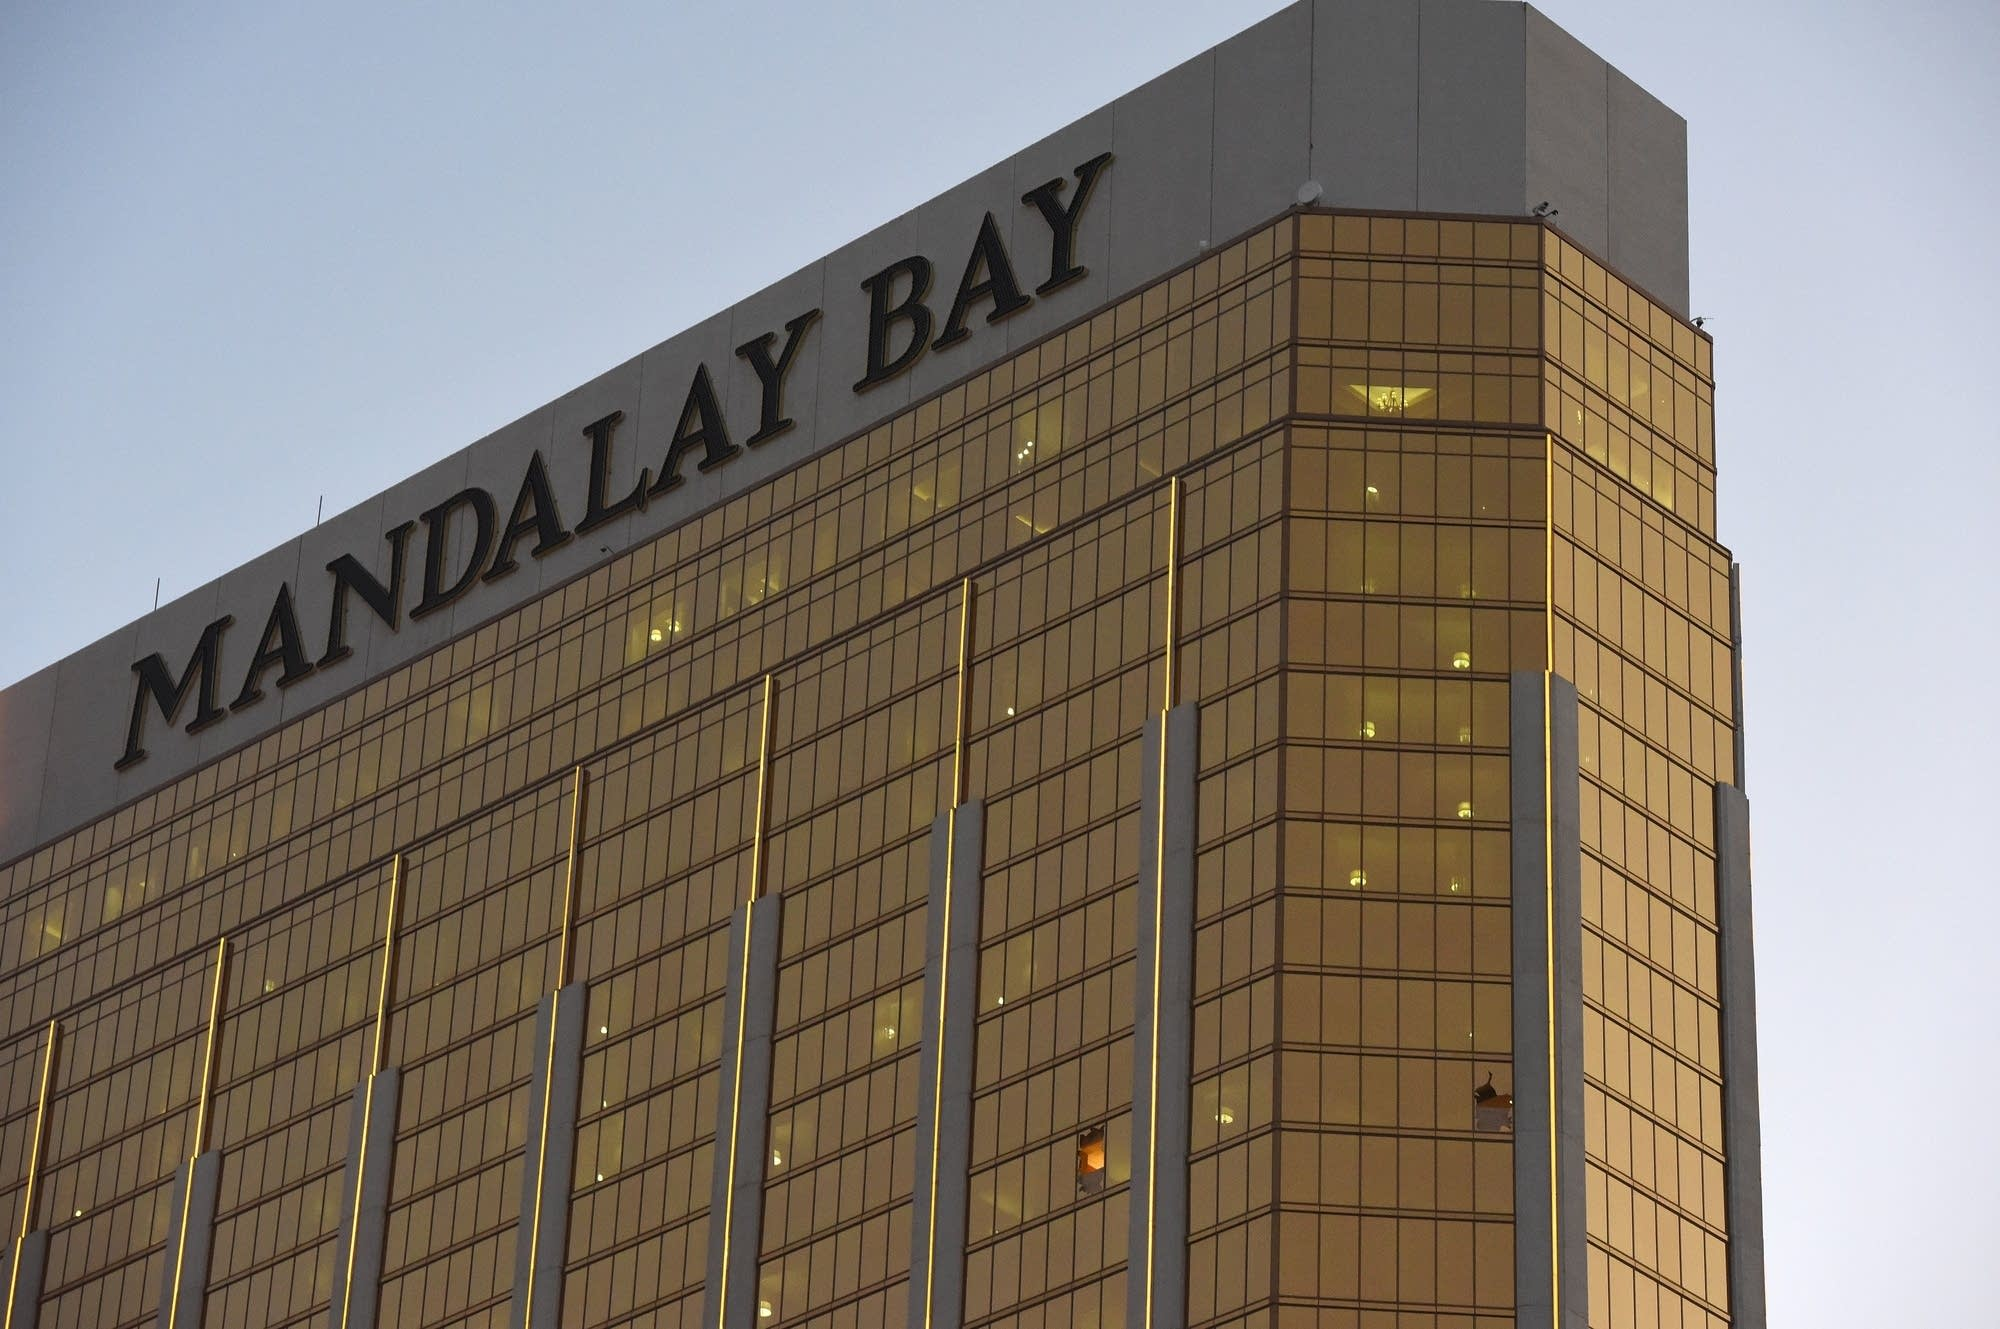 Las Vegas shooting: police say gunman's motive remains a mystery